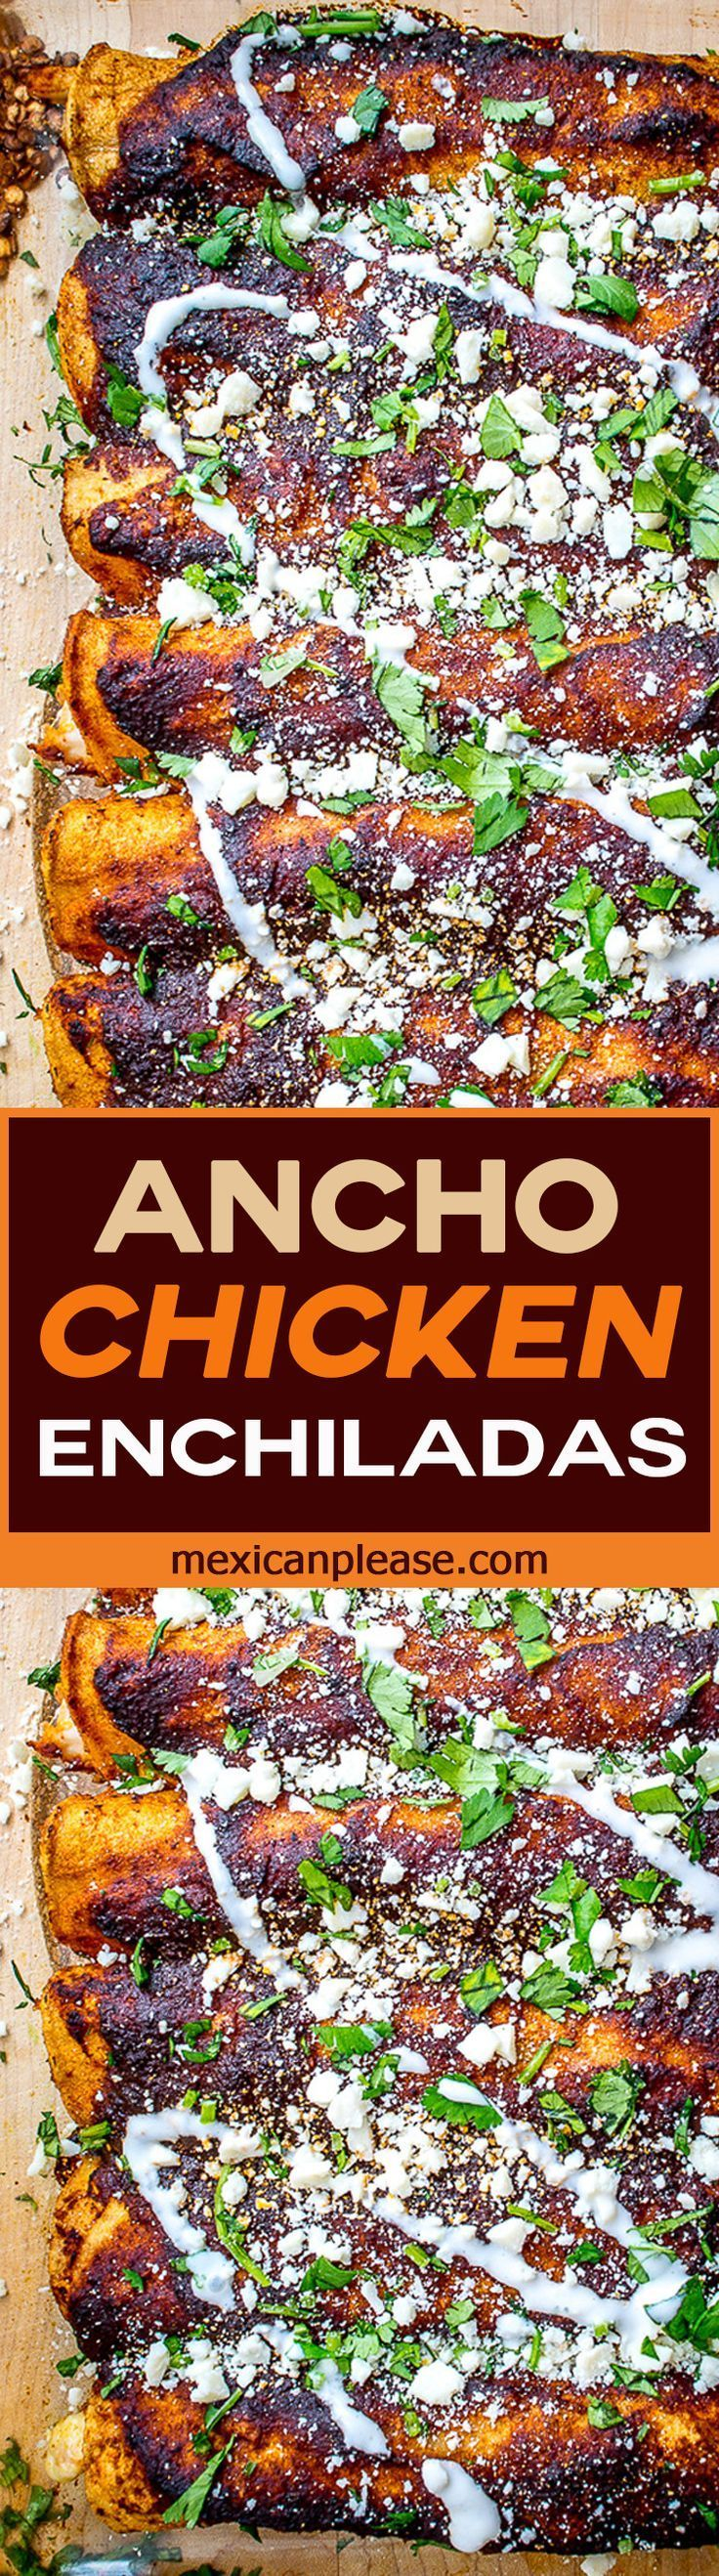 Ancho chili peppers combine with roasted tomatoes to create incredibly rich flavor for this chicken enchilada dish. It's easy too. No more enchilada sauce from the can OK? http://mexicanplease.com